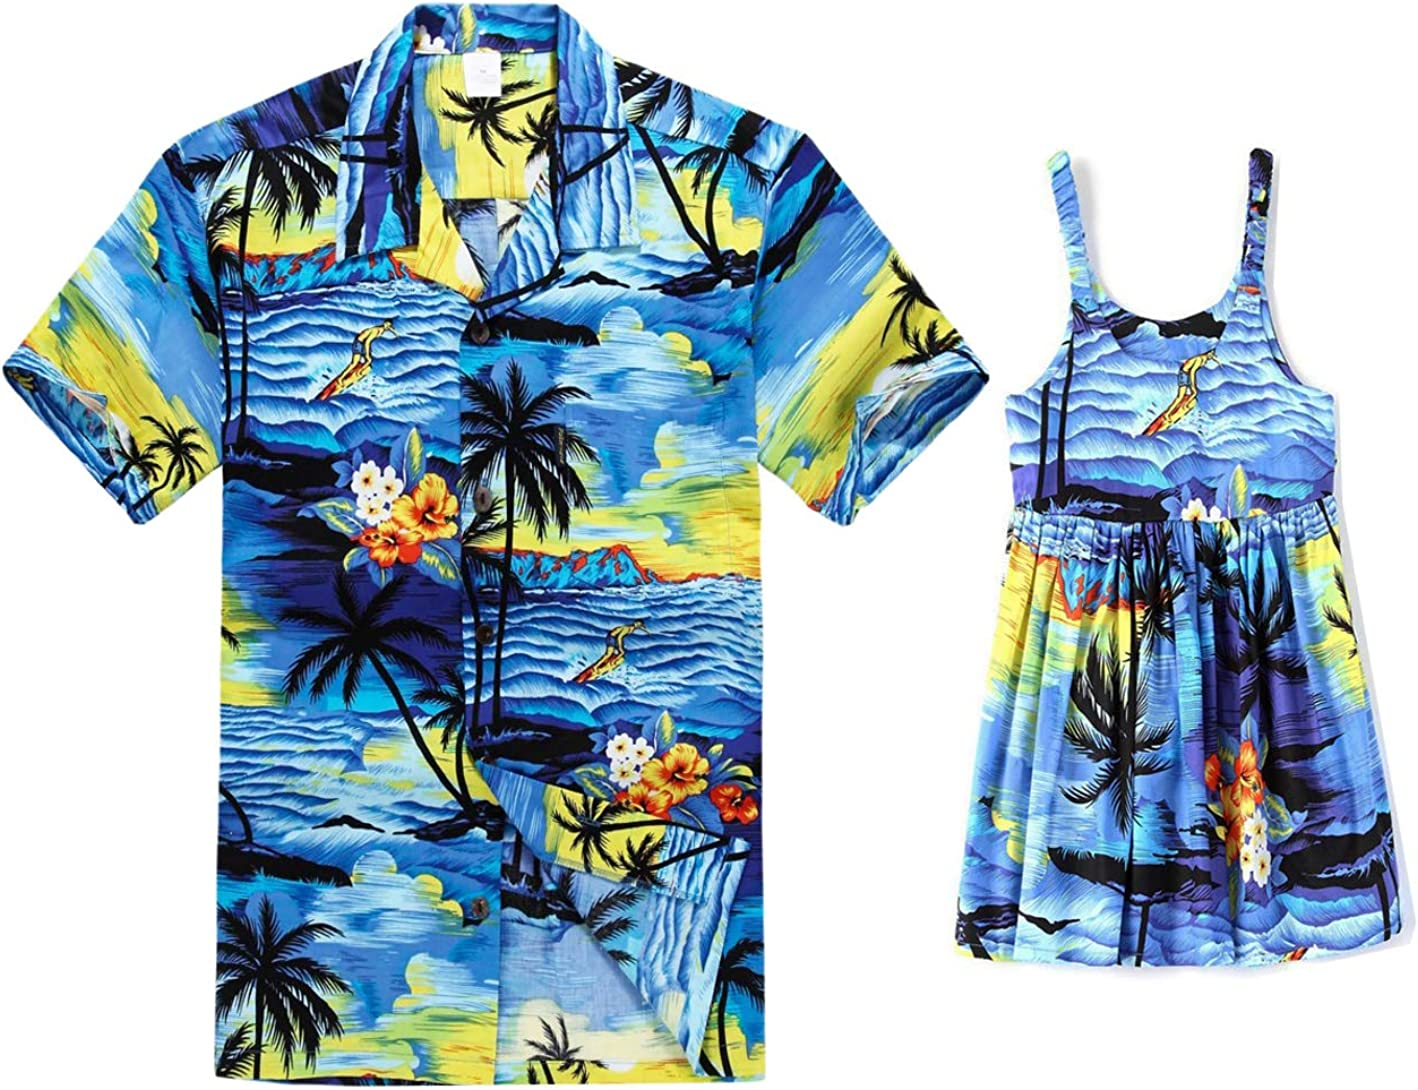 Cheap mail order specialty store Matching Father Daughter Hawaiian Luau Limited time sale Dre Shirt Girl Outfit Men